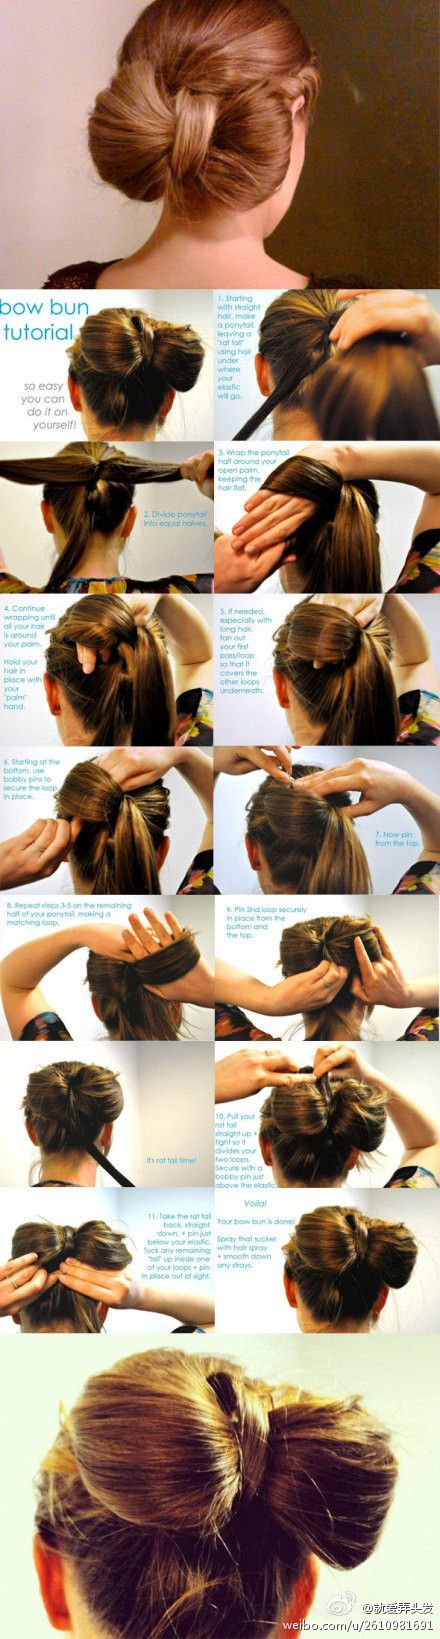 Very delicate bow hairdressing to